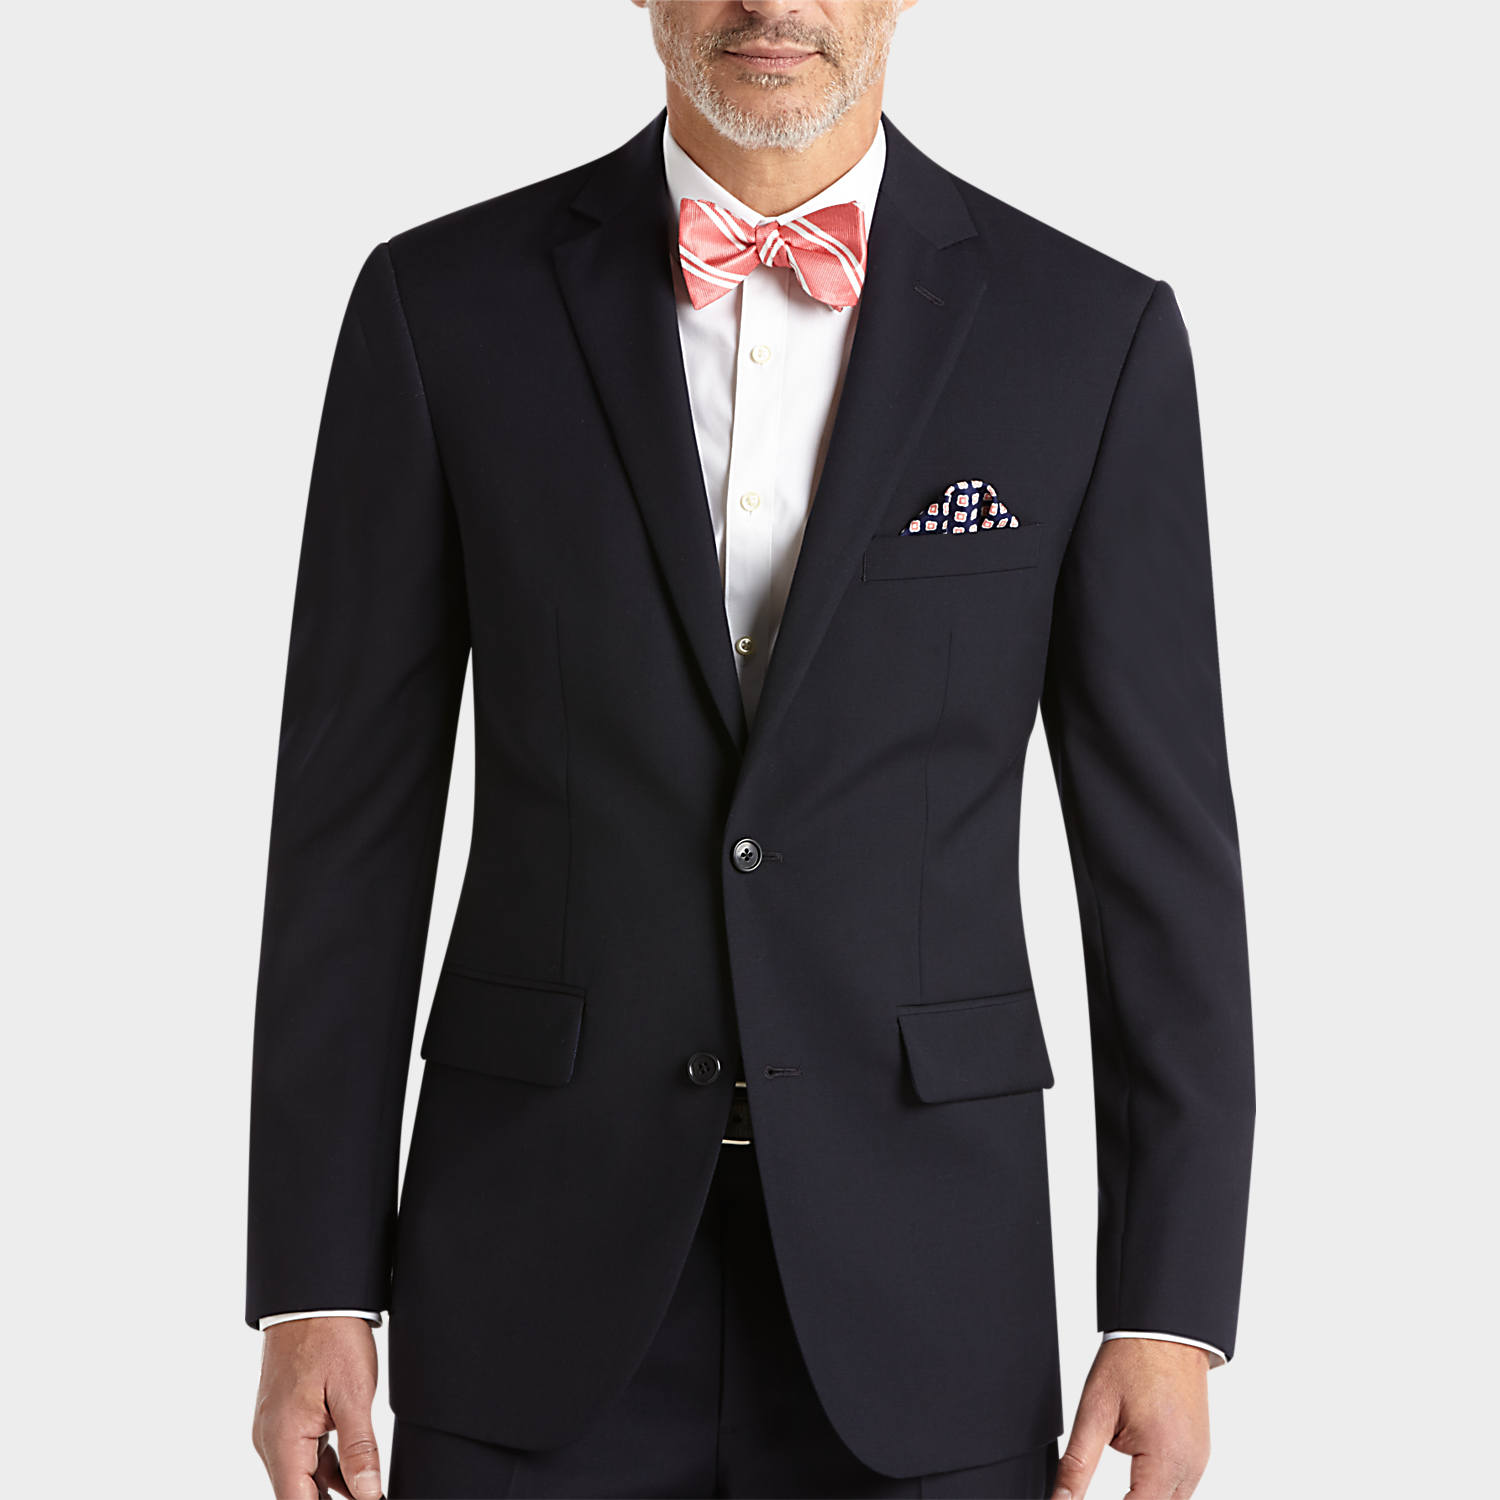 Navy Modern Fit Suit - Men's Suits - Pronto Uomo | Men's Wearhouse